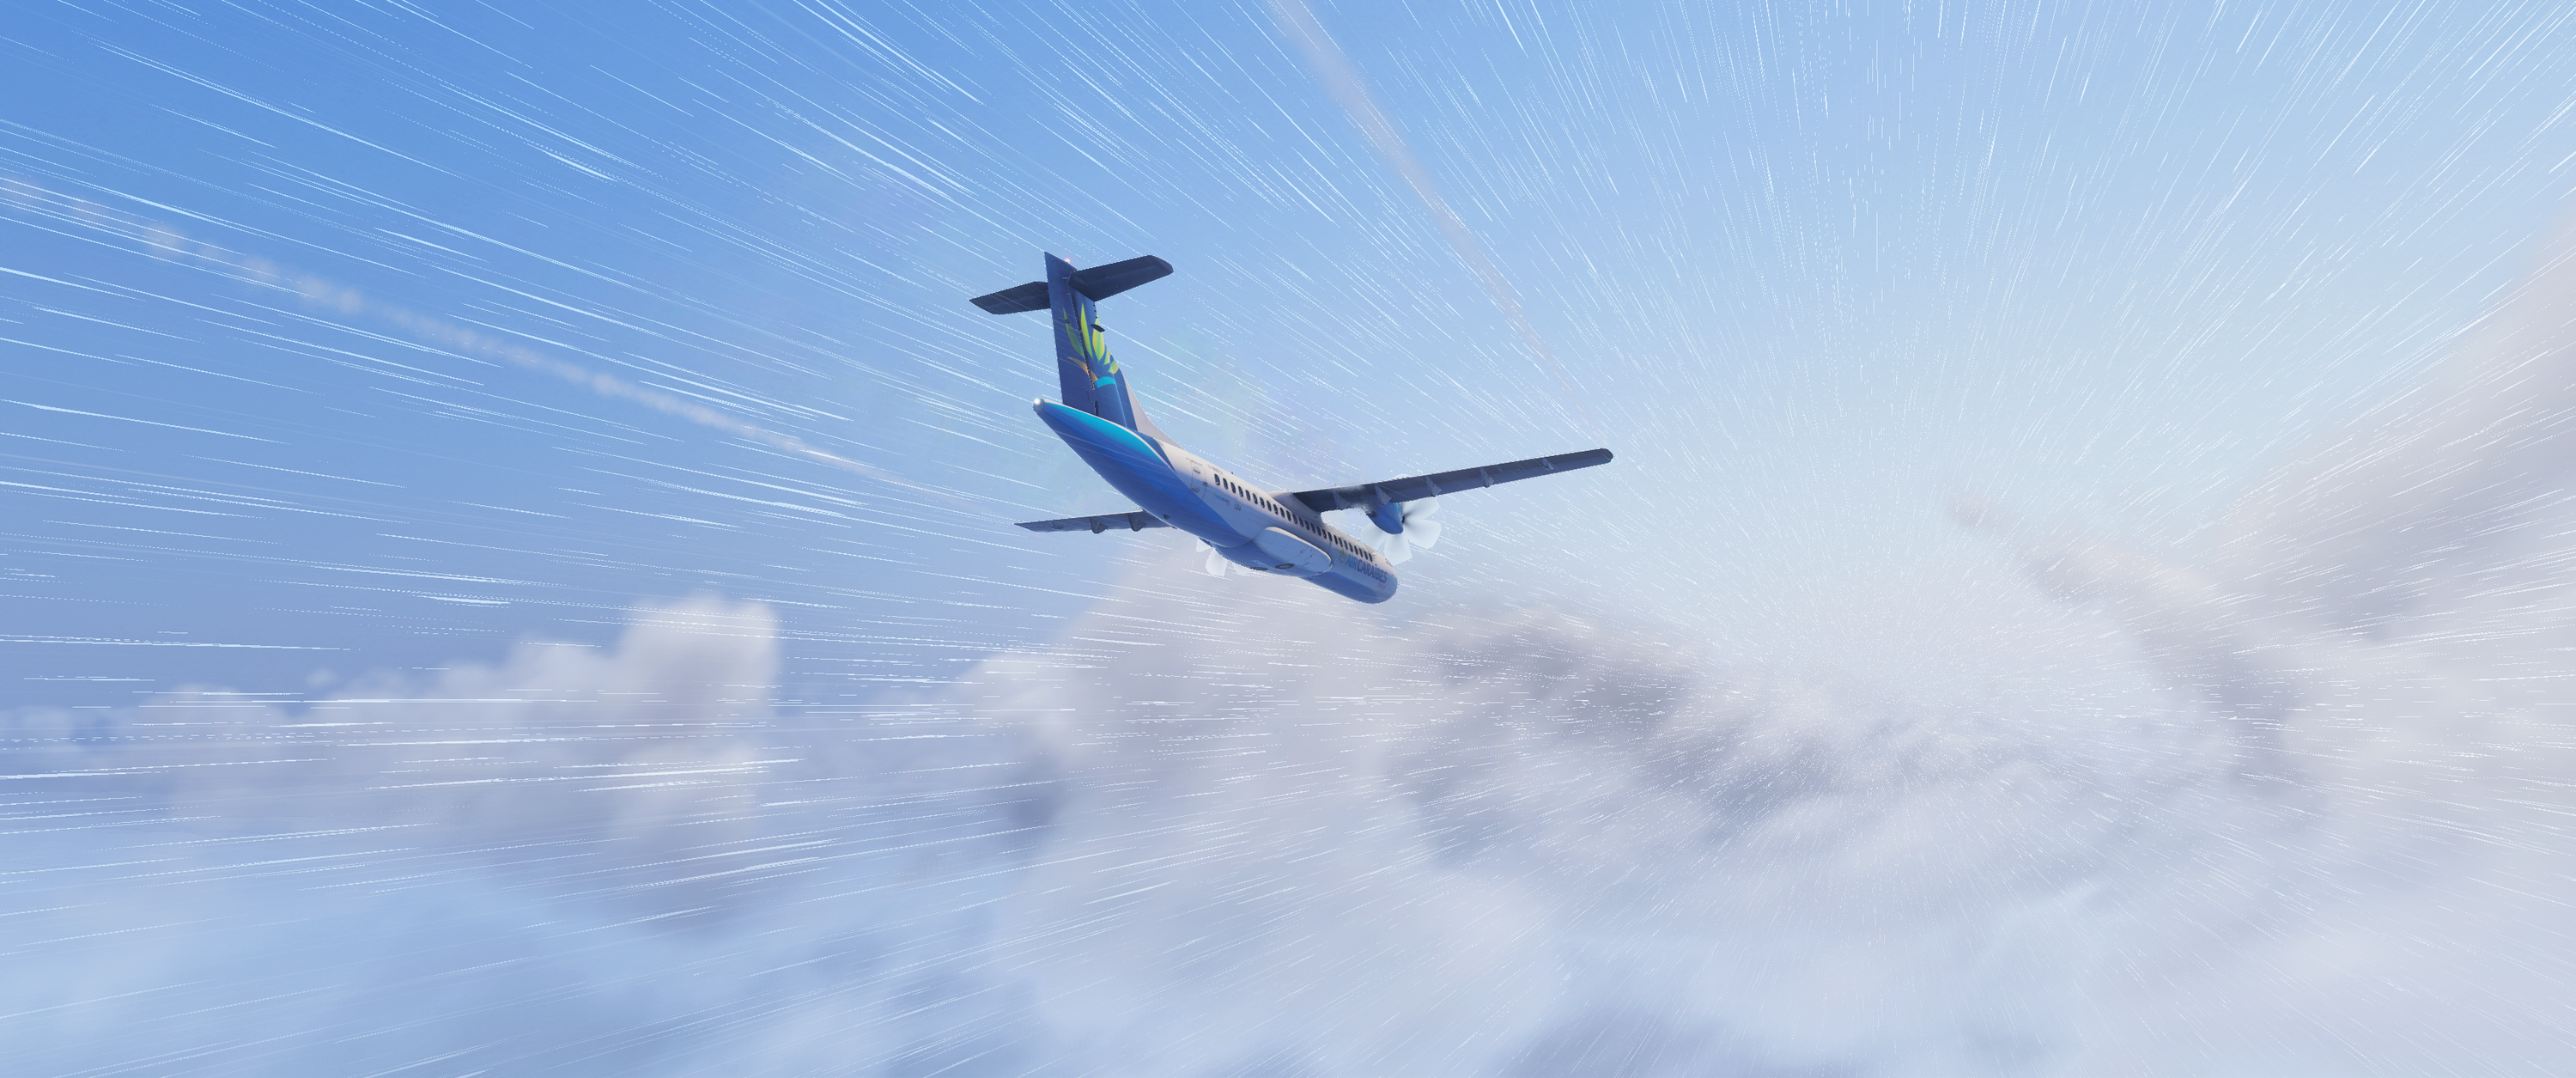 X-Plane Screenshot 2020.03.21 - 17.08.19.88.png